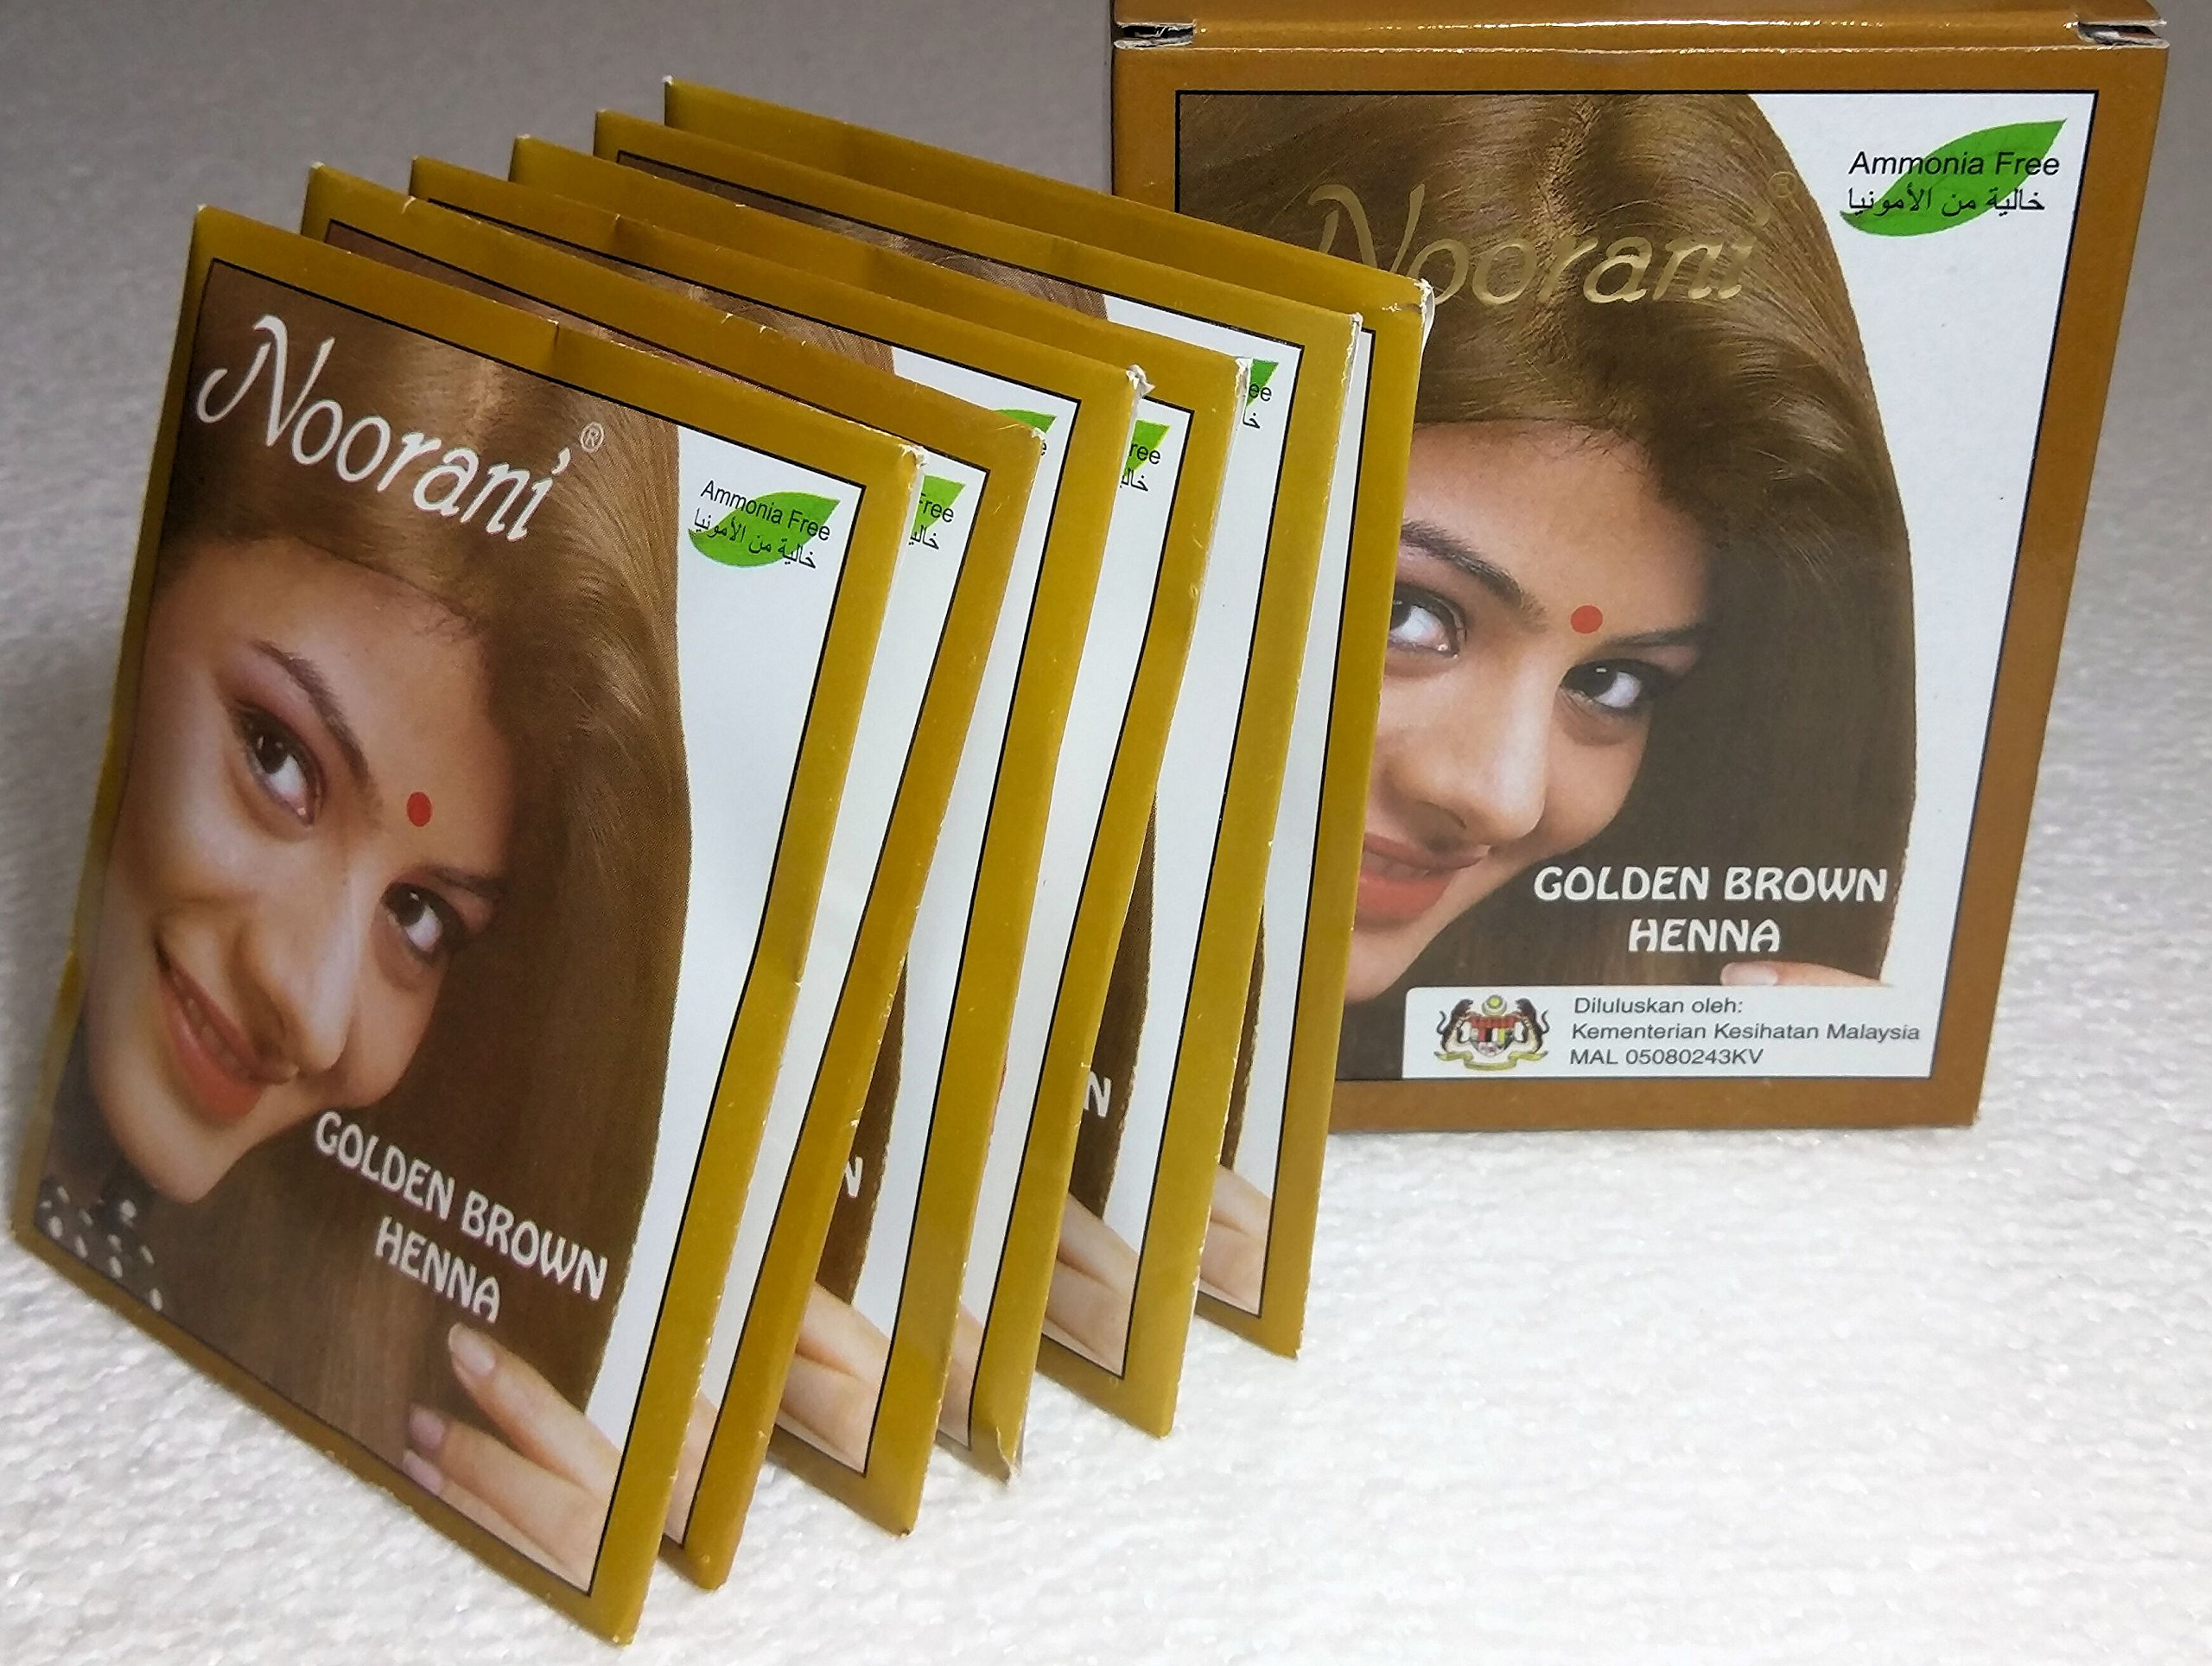 Noorani Golden Brown Henna for Hair 6 X 10 Gms/Box (Pack of 10 Boxes)